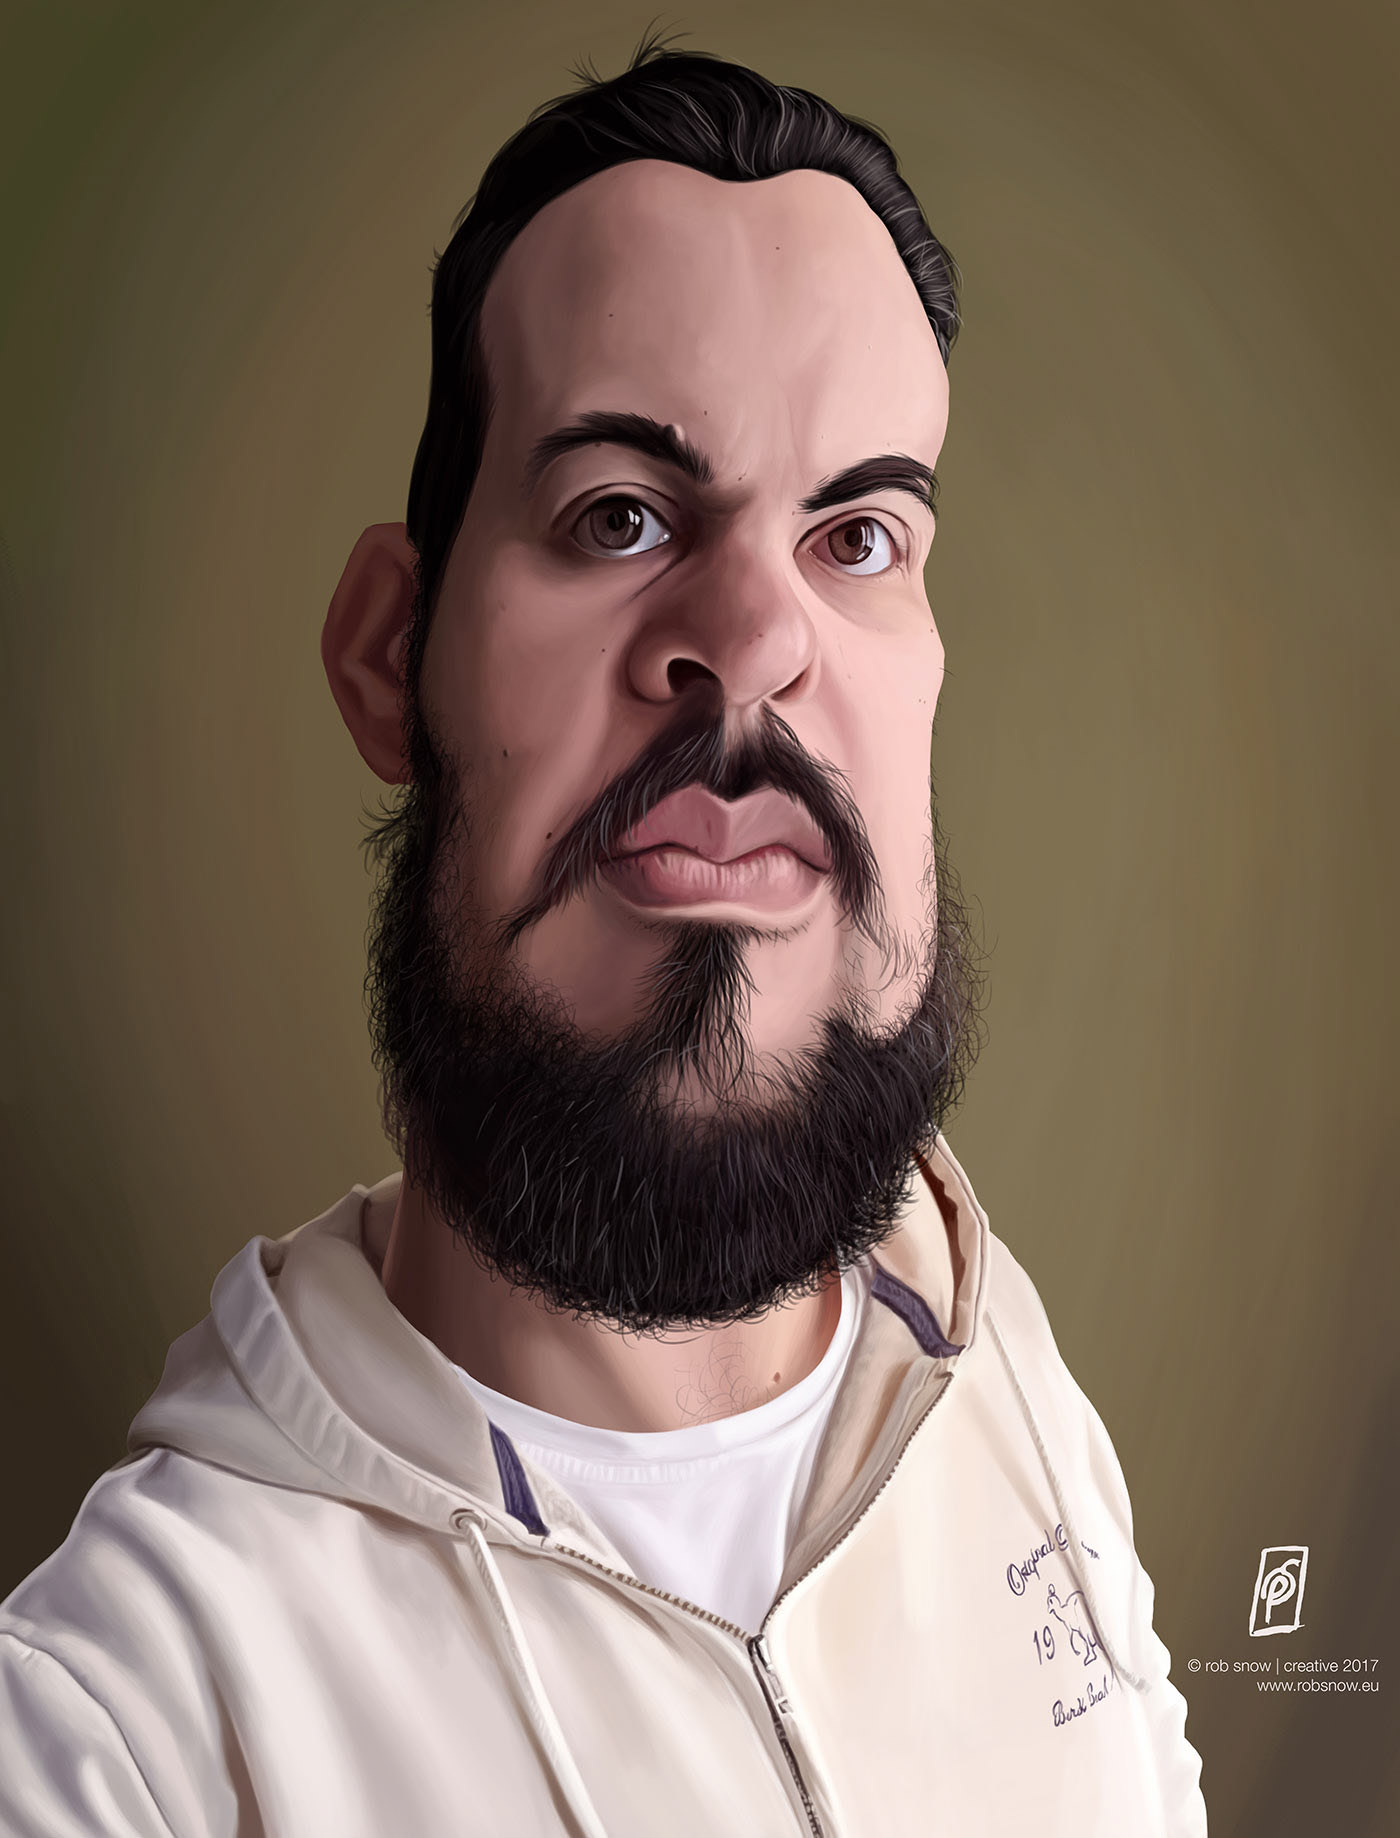 caricature illustrations by stavros damos